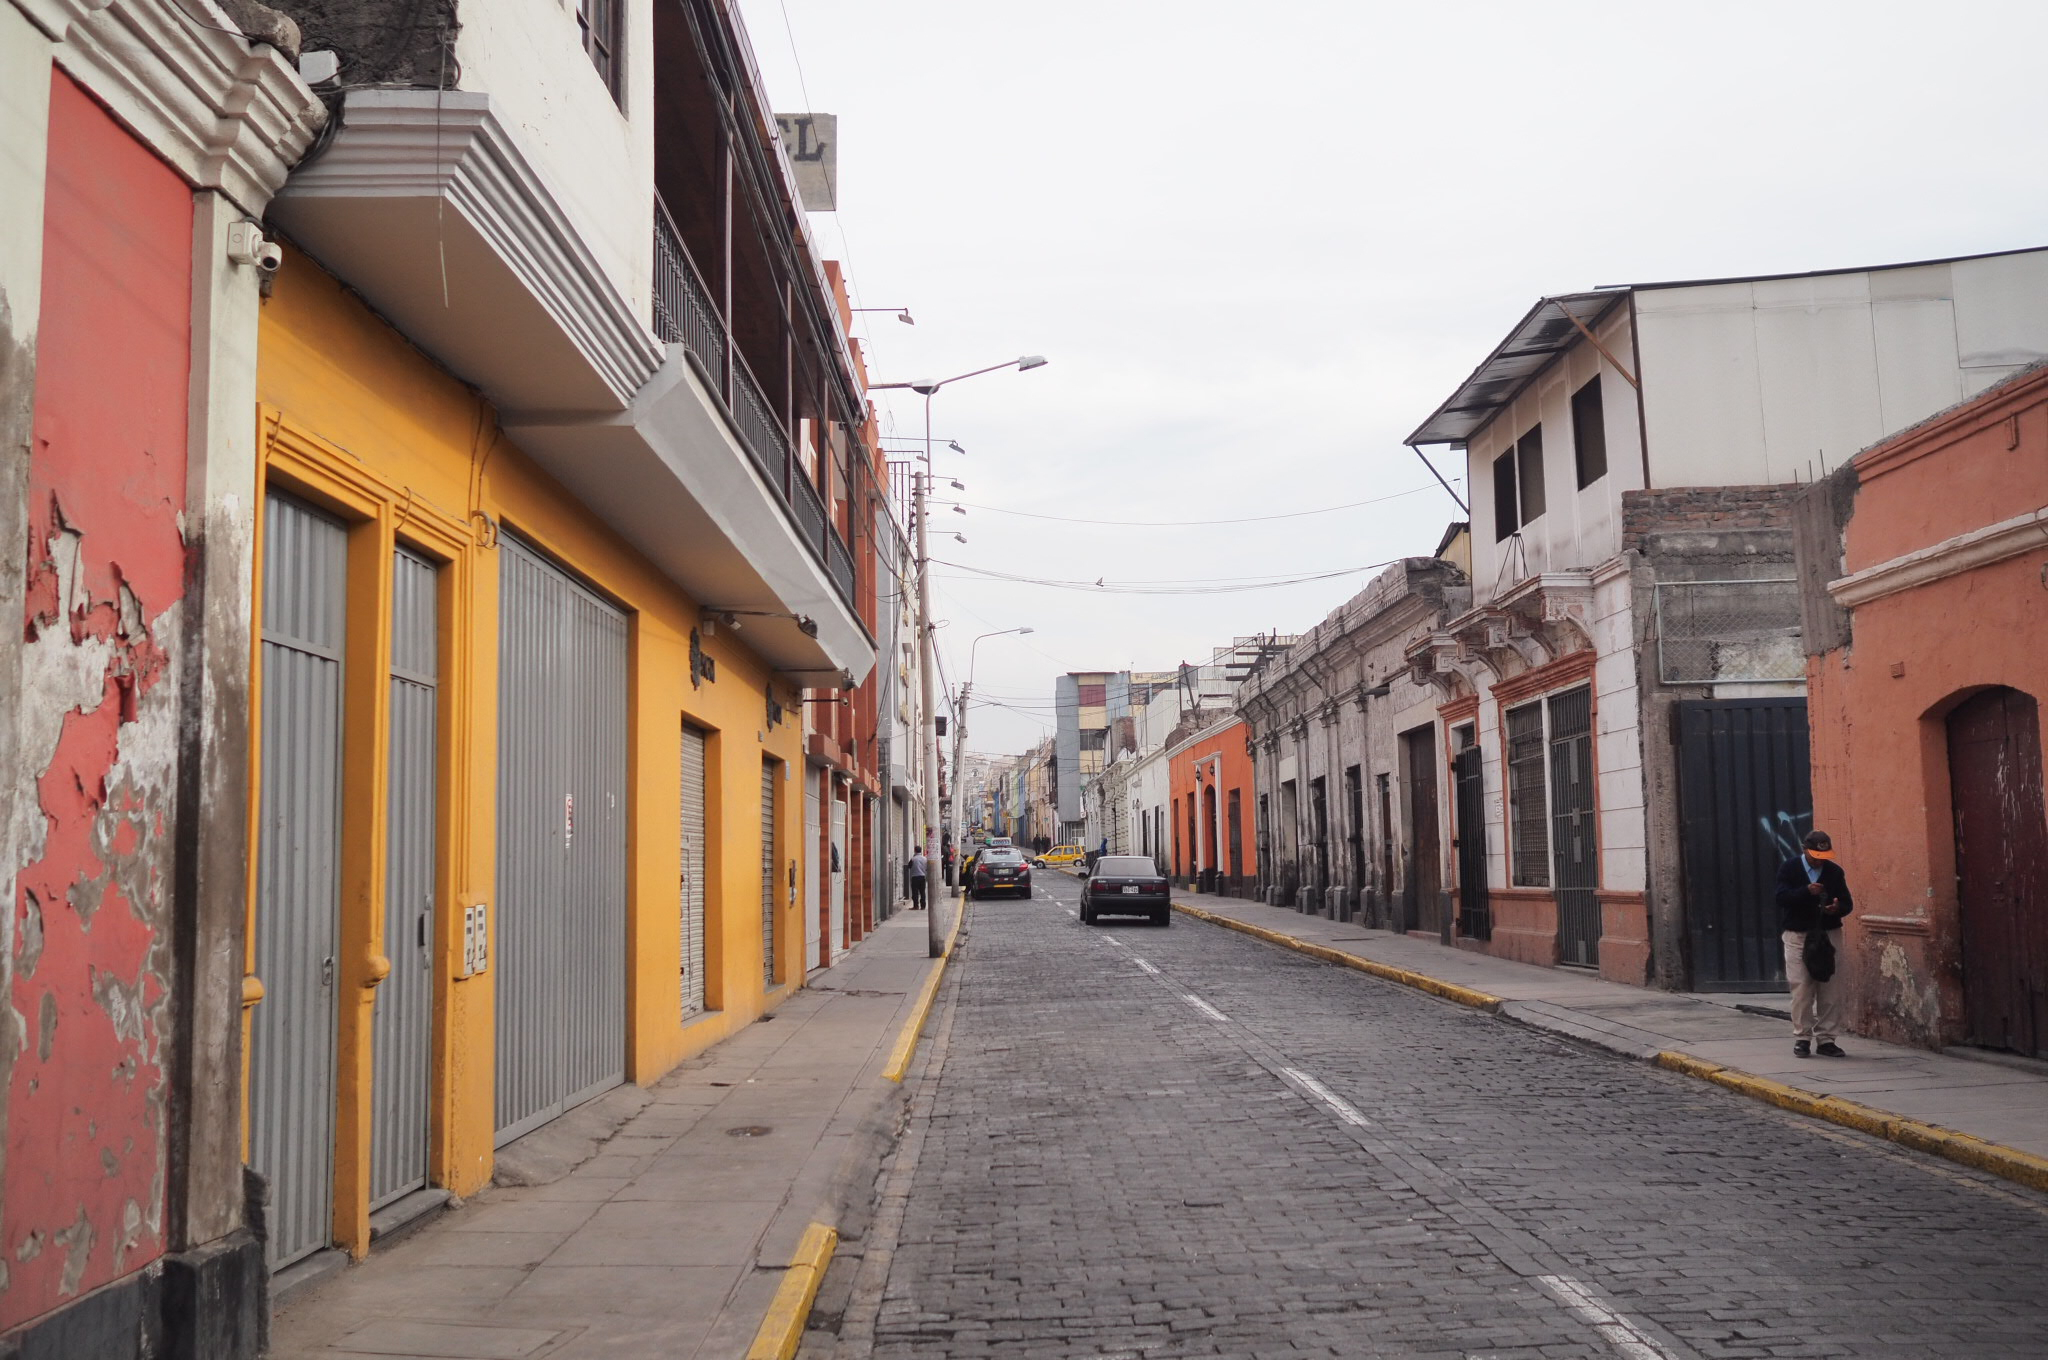 In the street of Peru.